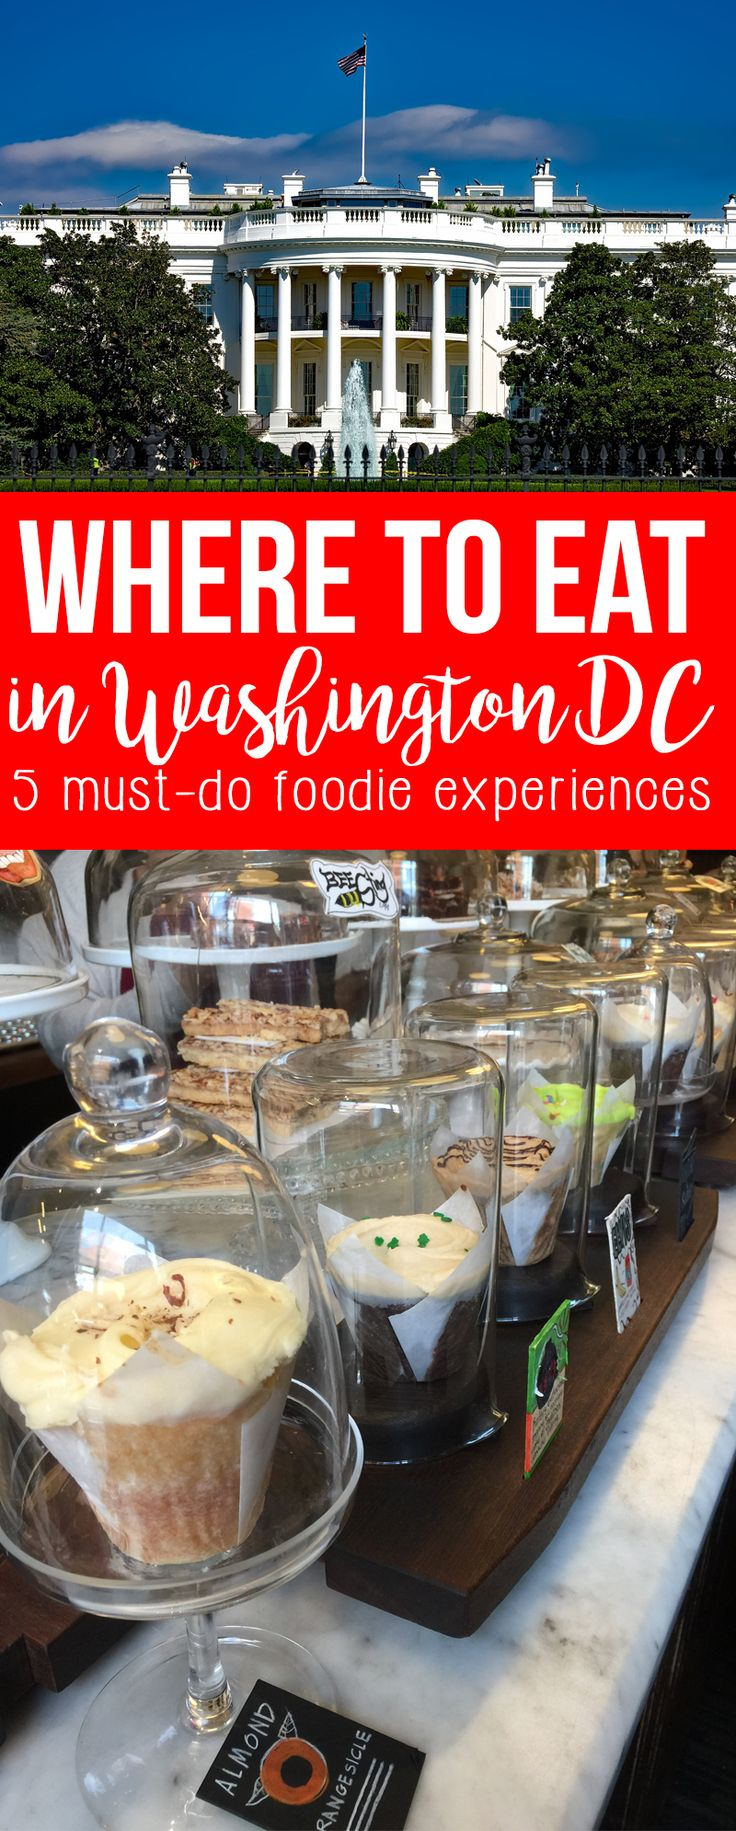 White apron dc nutrition - Where To Eat In Washington Dc 5 Must Do Foodie Experiences